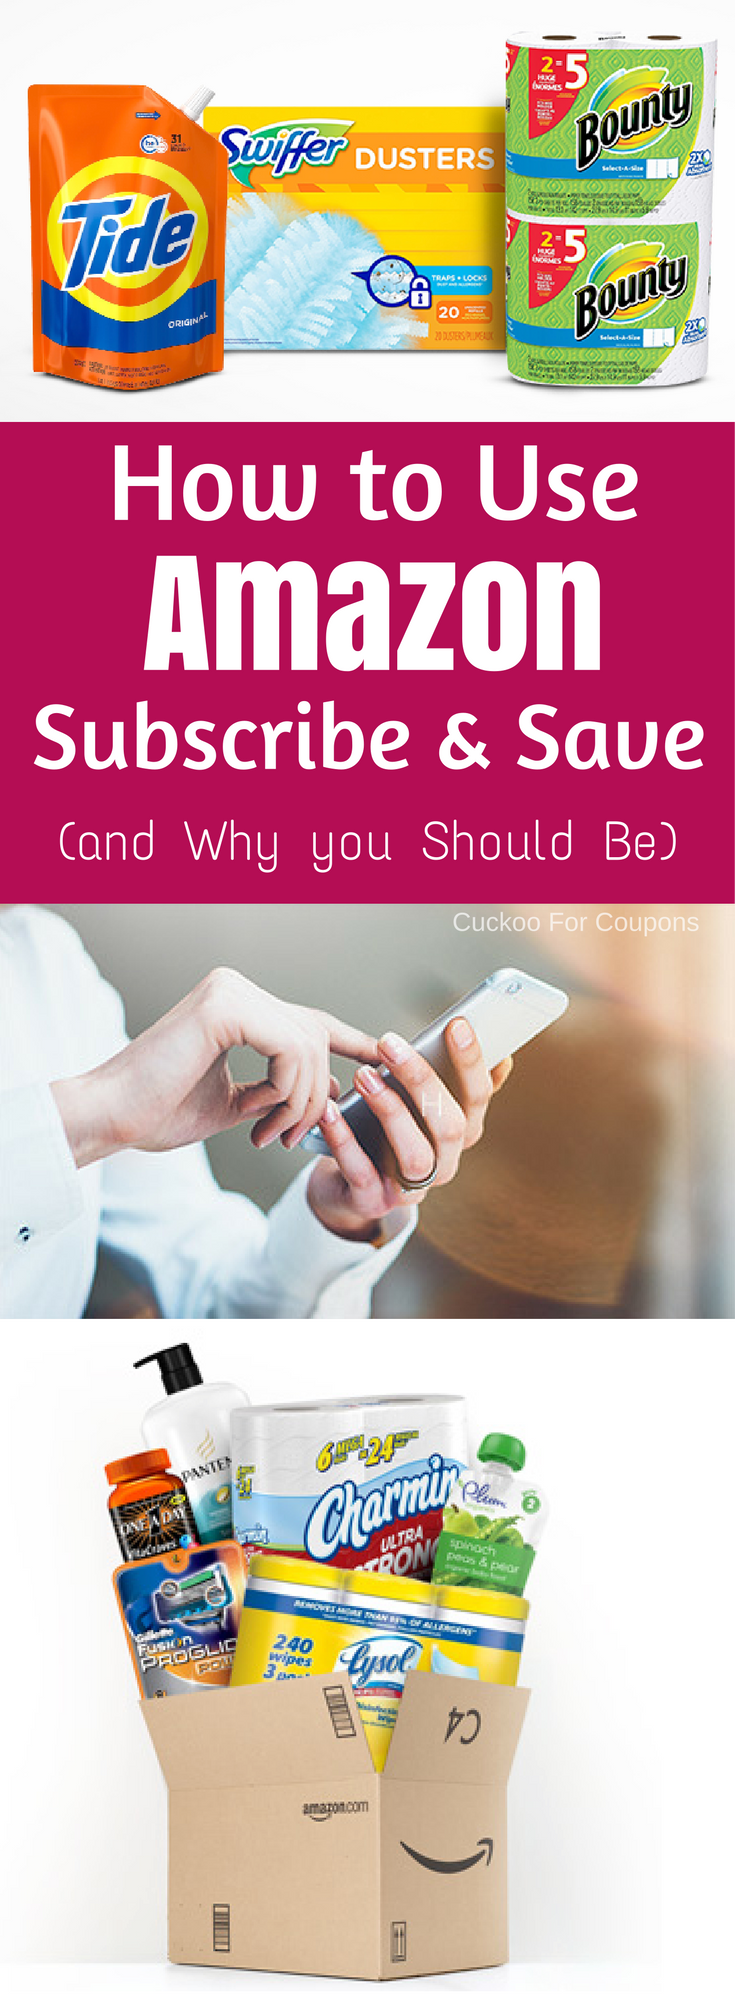 how-to-use-amazon-subscribe-save-2